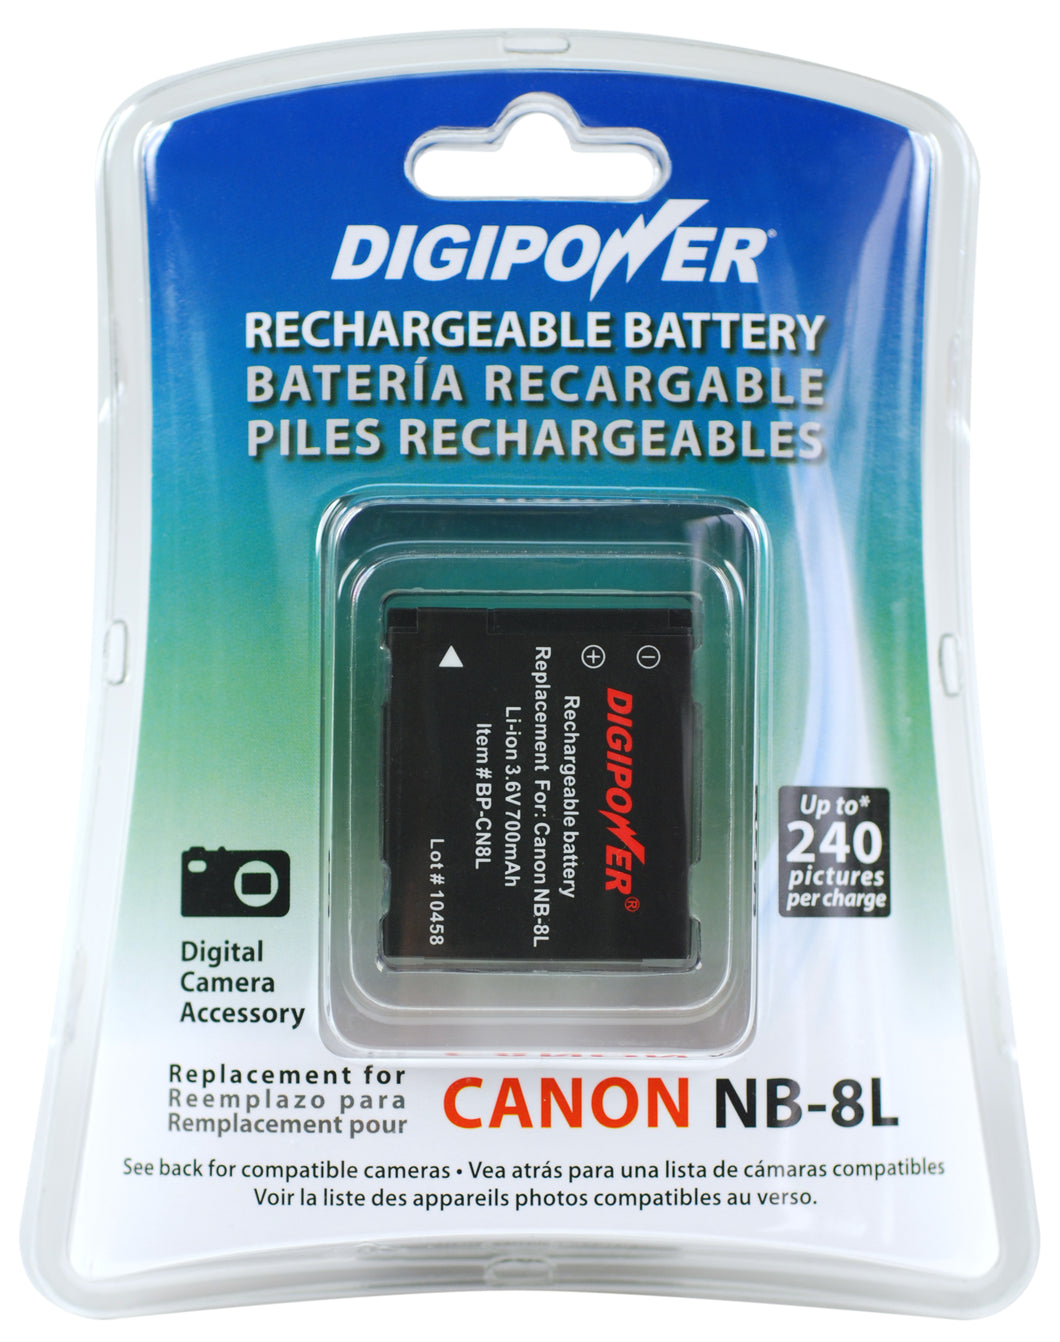 Digipower BP-CN8L digital camera battery, Replacement for Canon NB-8L battery pack